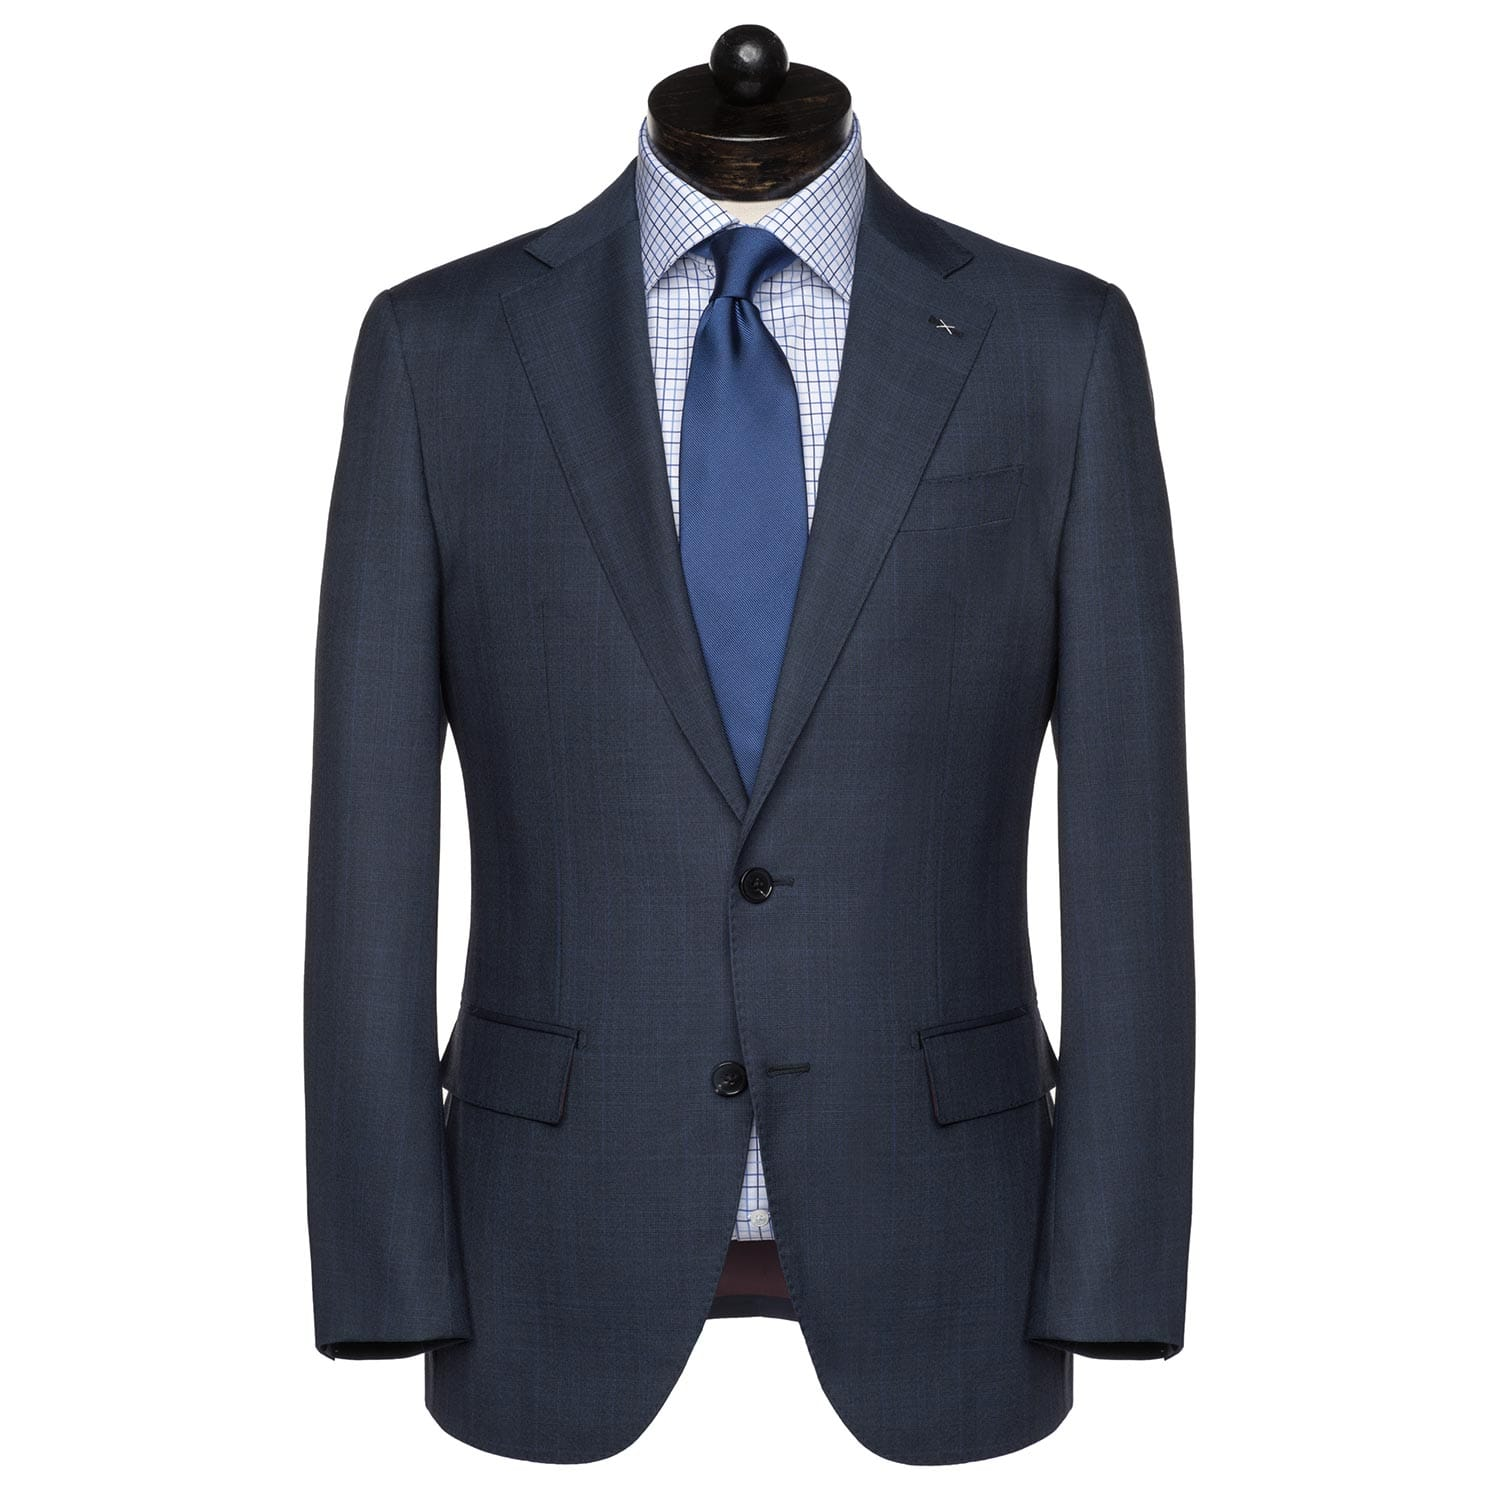 Spier & Mackay Warehouse Sale - Blue Check Suits - $199.99 and More + Free Shipping